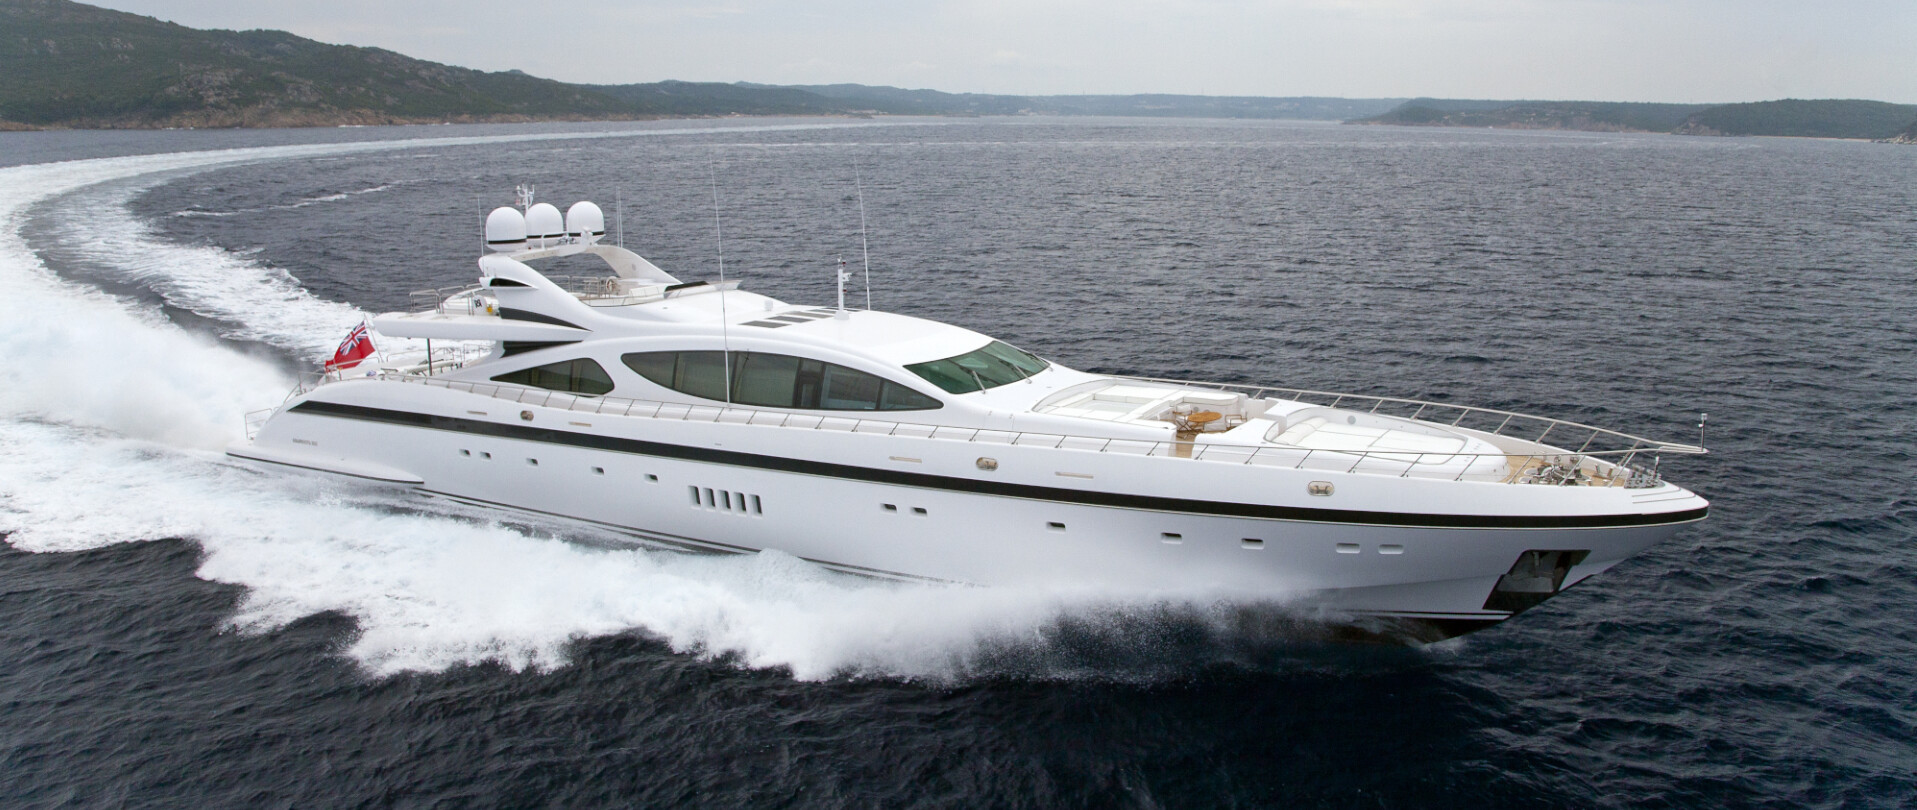 Rush, New JCA for sale | Attending MYS 2019 | Price reduction photo 1